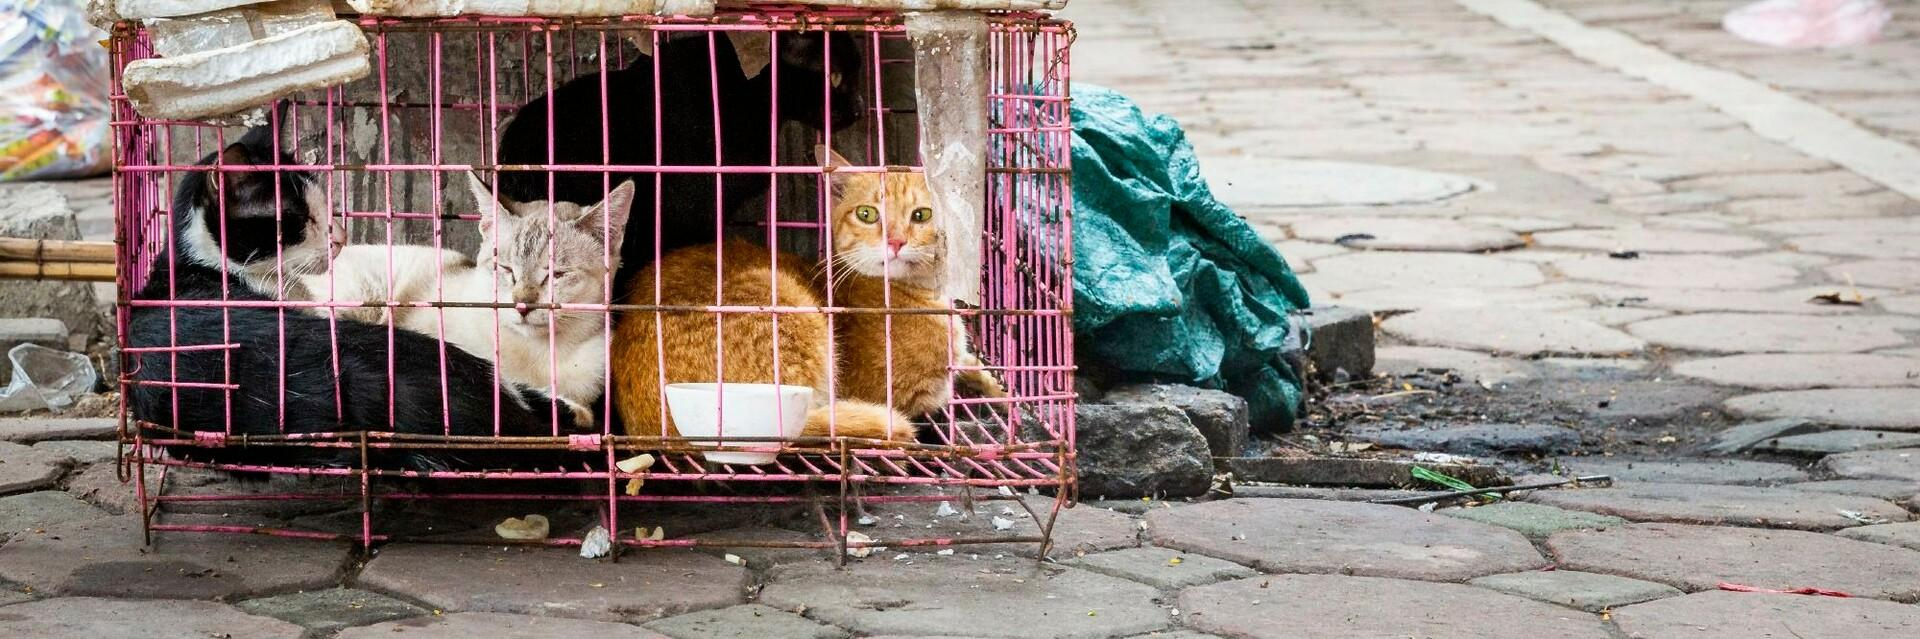 Cat in a cage in Vietnam